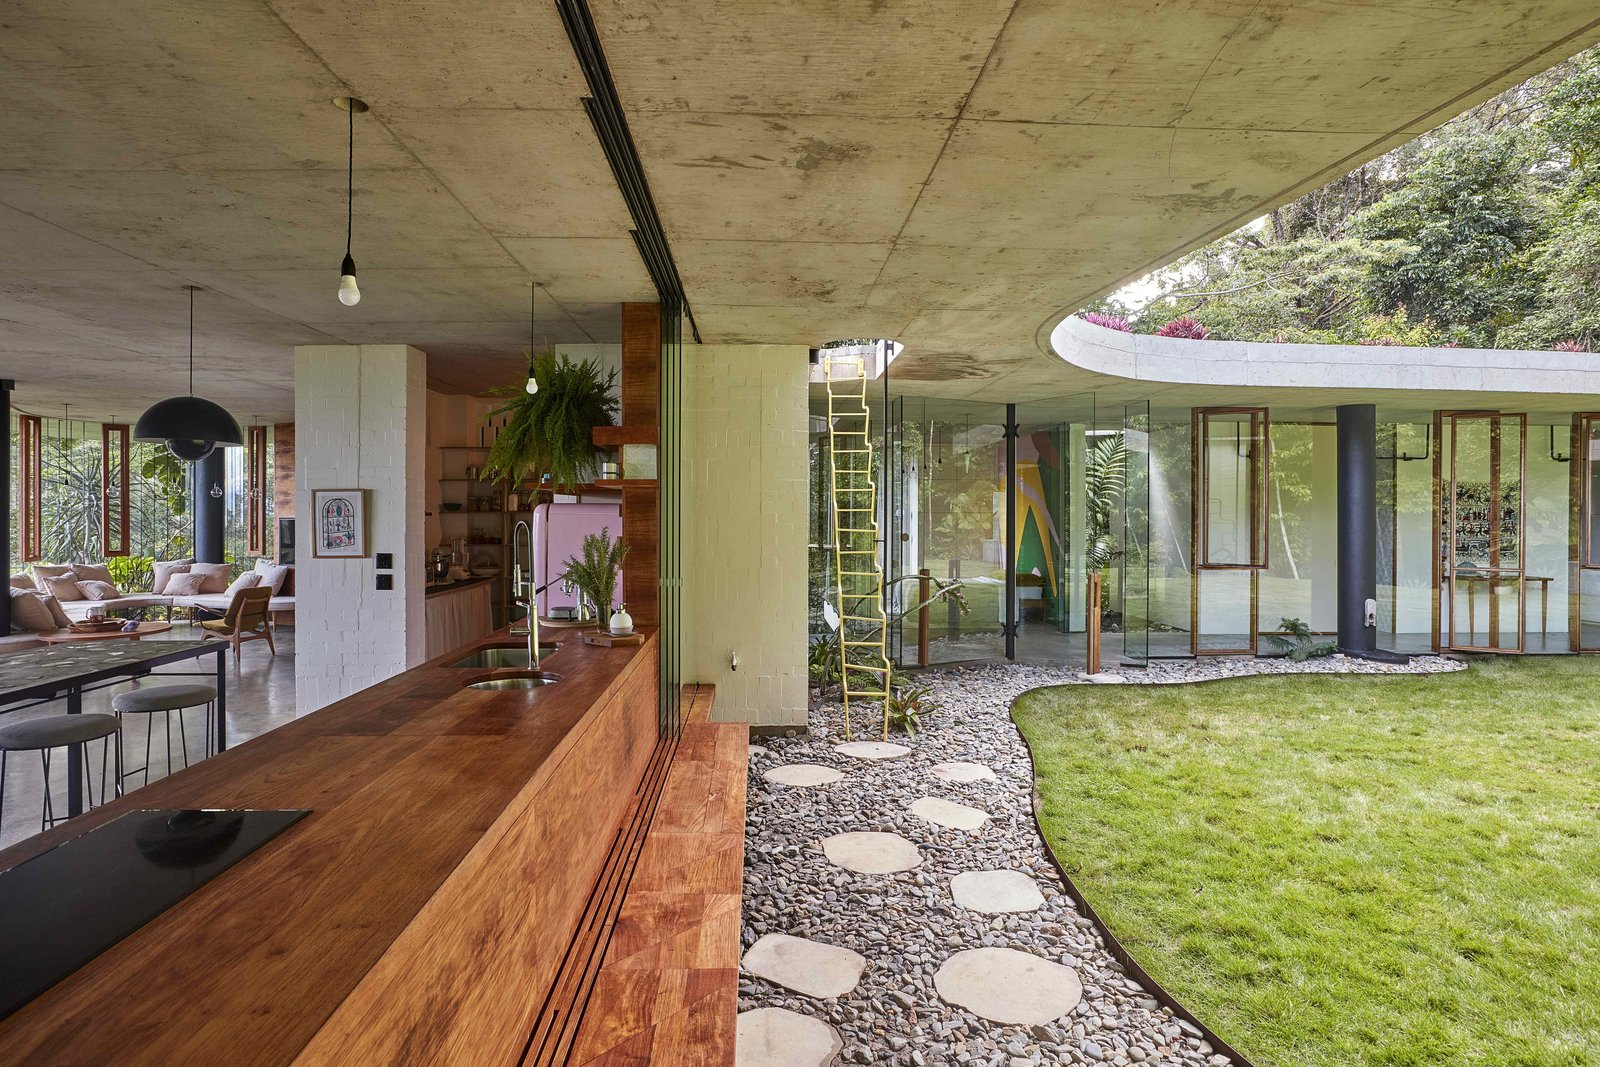 Kitchen, Wood, Undermount, Cooktops, Concrete, and Pendant A rosewood bench in the kitchen folds to form an outdoor seat.  Best Kitchen Concrete Undermount Wood Photos from A Funky, Curvaceous Rainforest Home in Australia Hits the Market